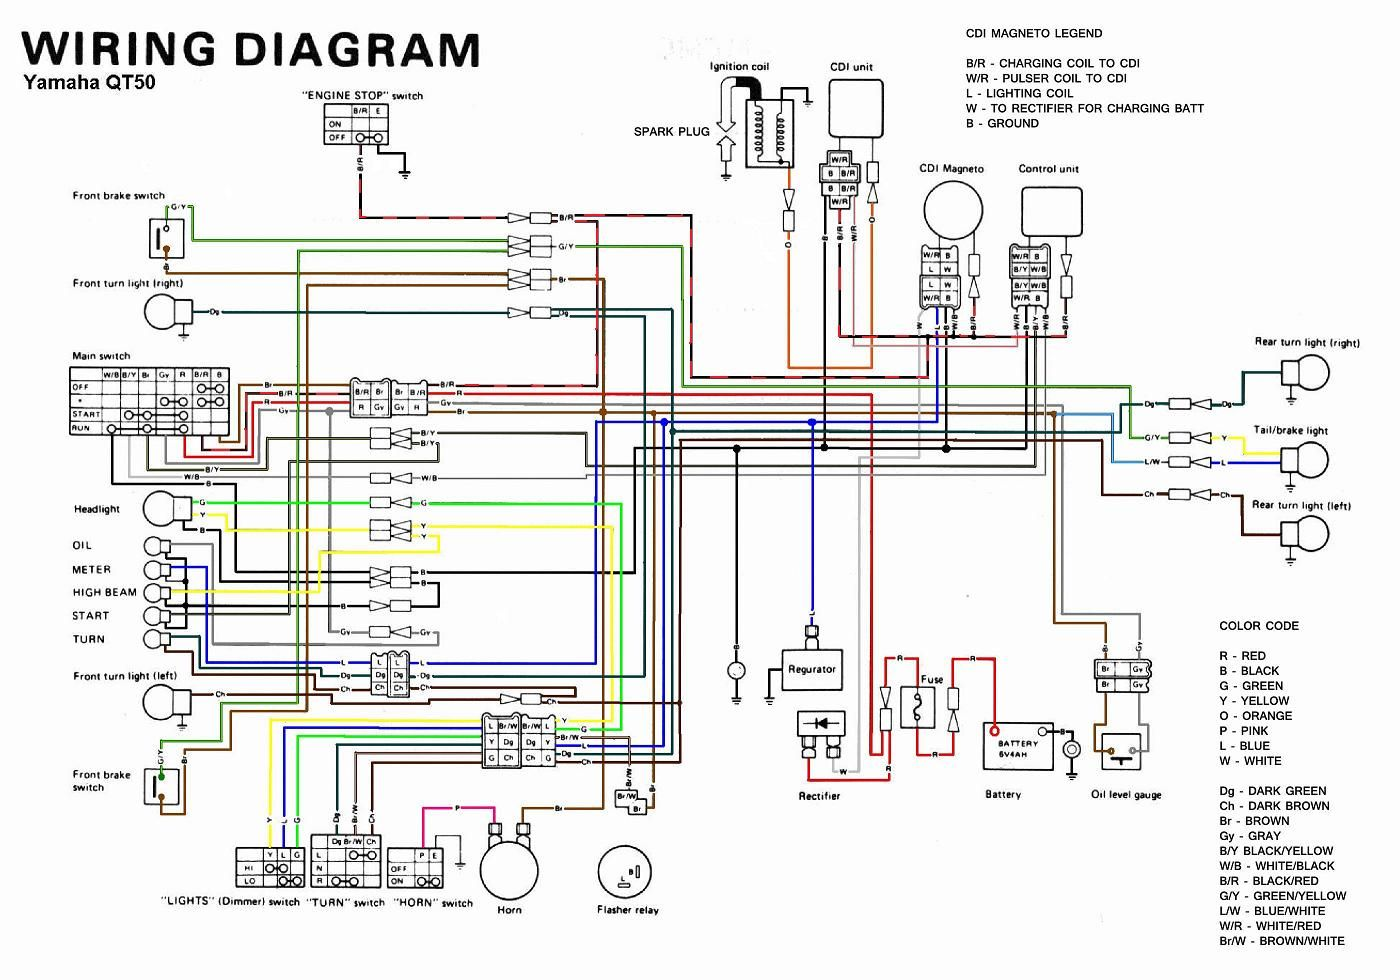 Image result for 1989 yamaha Zuma wiring diagram | 1989